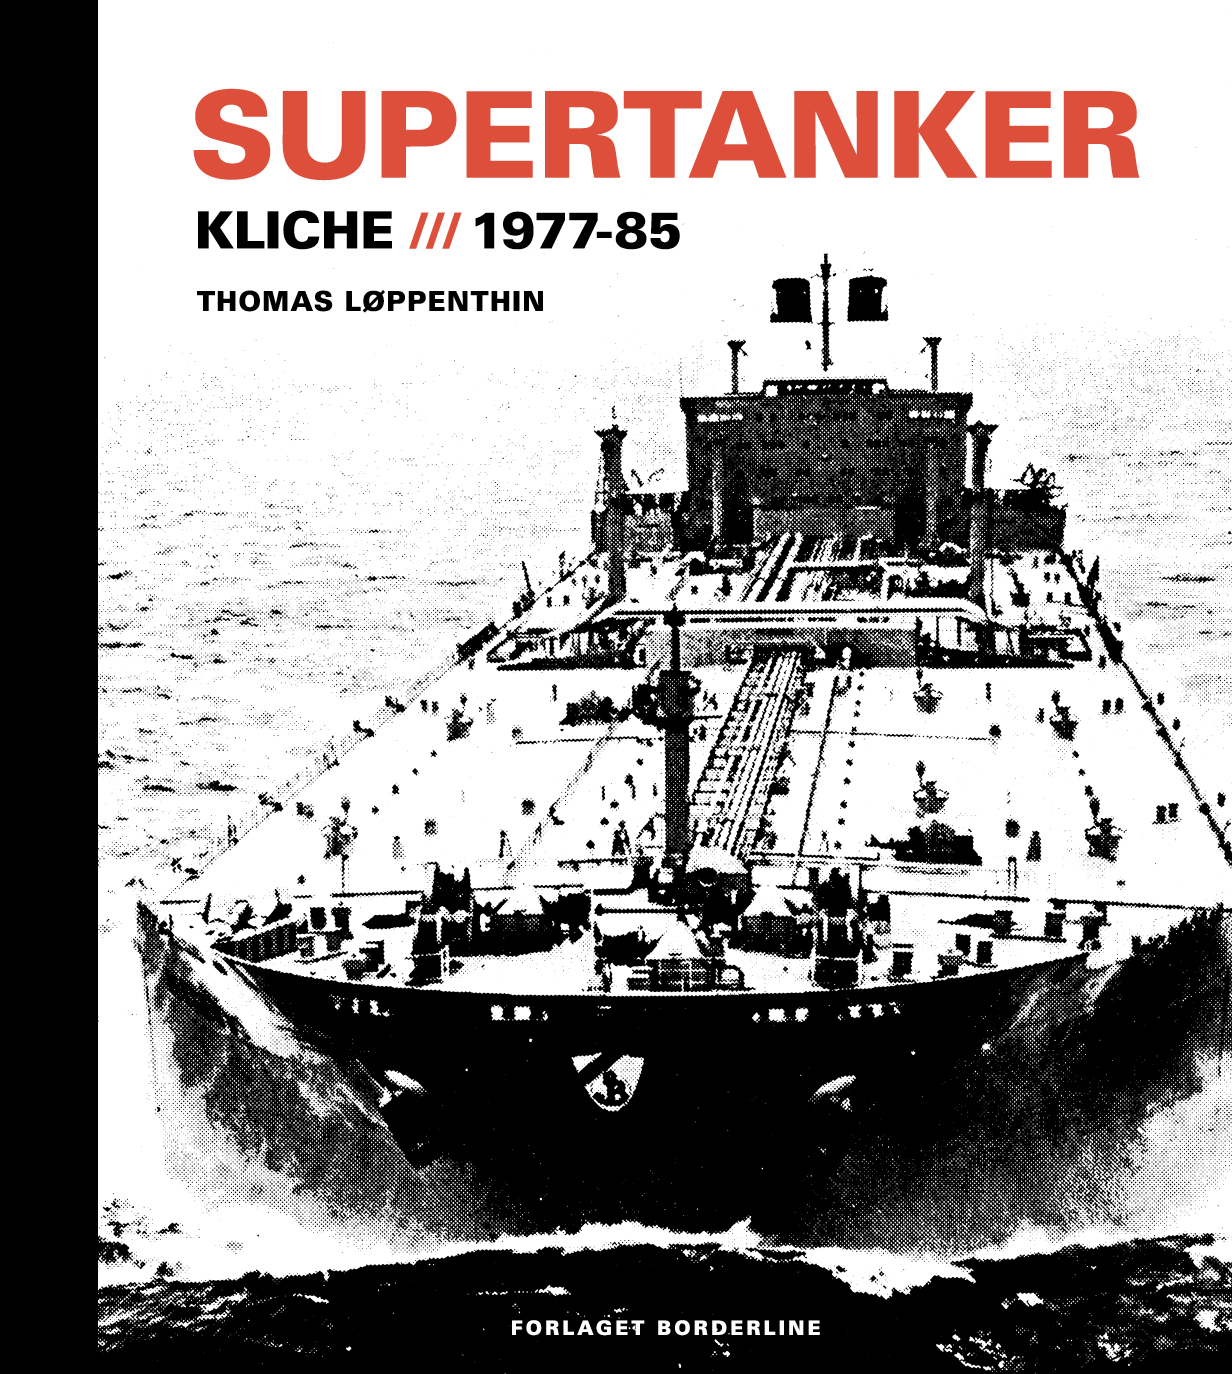 Supertanker - Kliché, 1977-85 - Thomas Løppenthin - Bøger - Forlaget Borderline - 9788797168103 - December 6, 2019